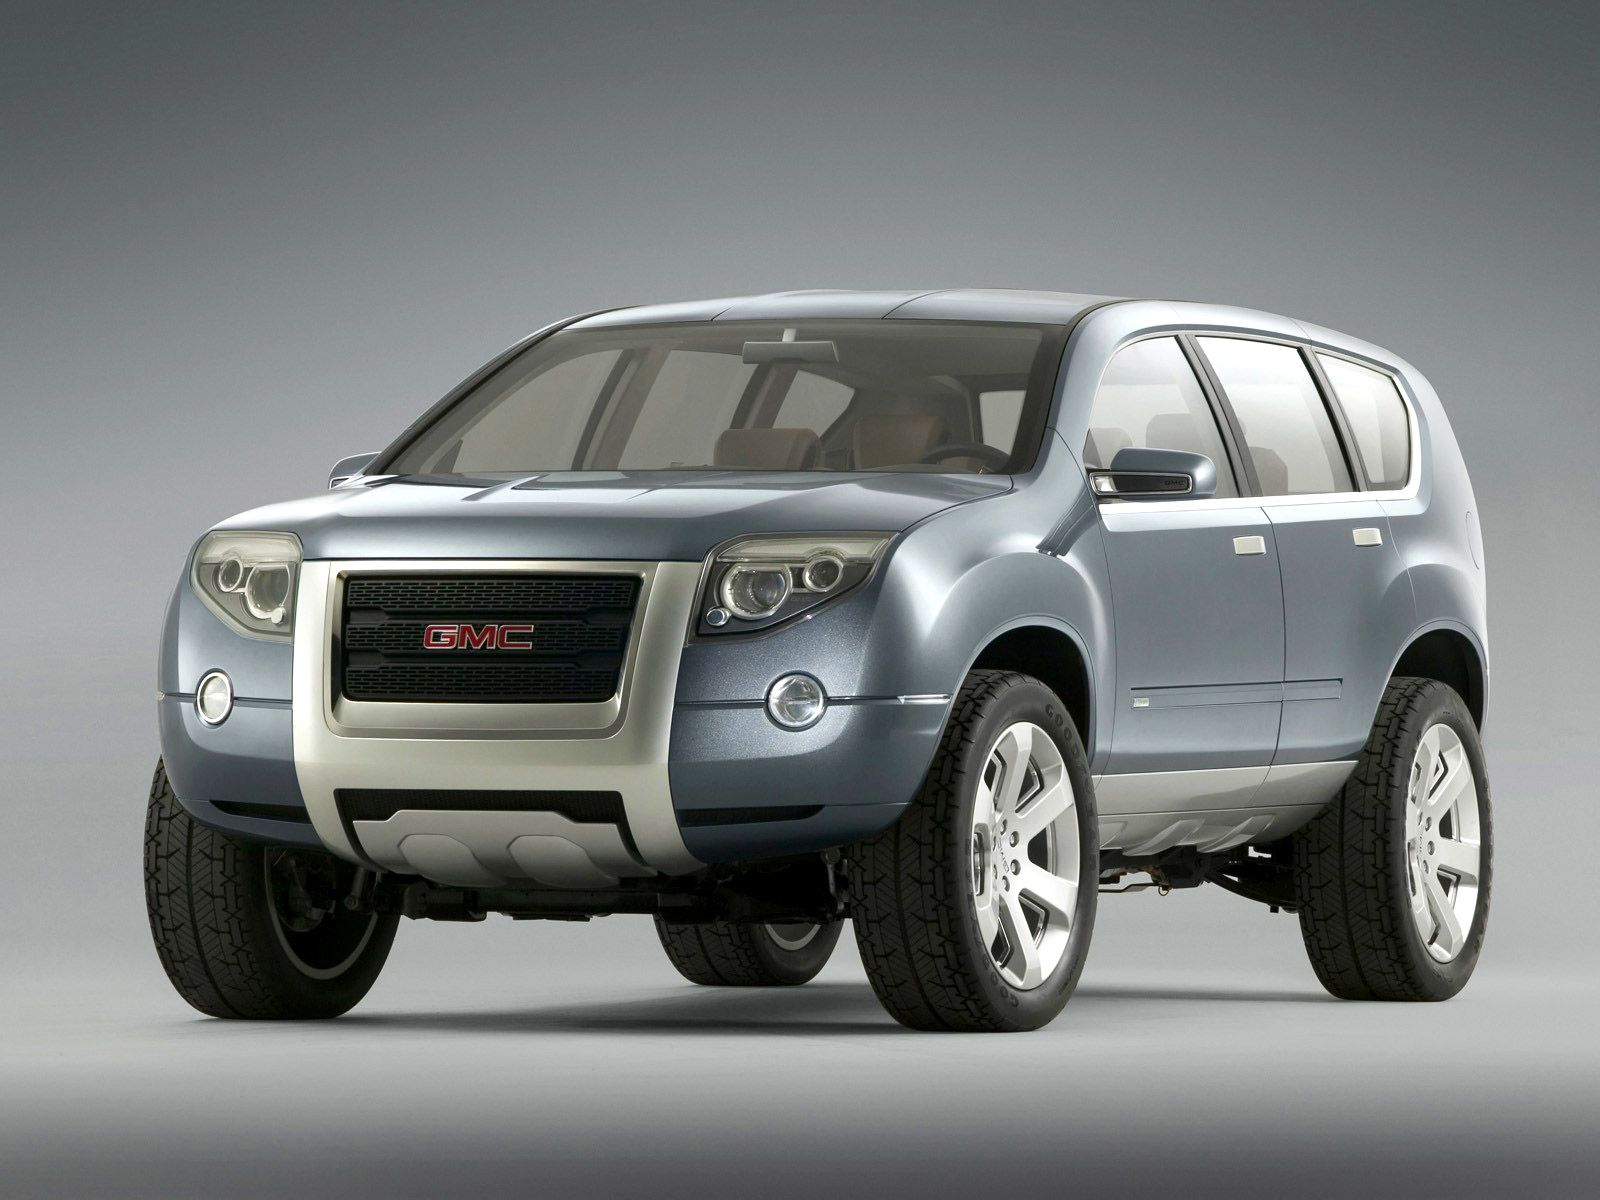 The Gmc Graphyte Hybrid Is A Truck Branded Concept Car And Sport Utility Vehicle From General Motors It Uses Two Mode System